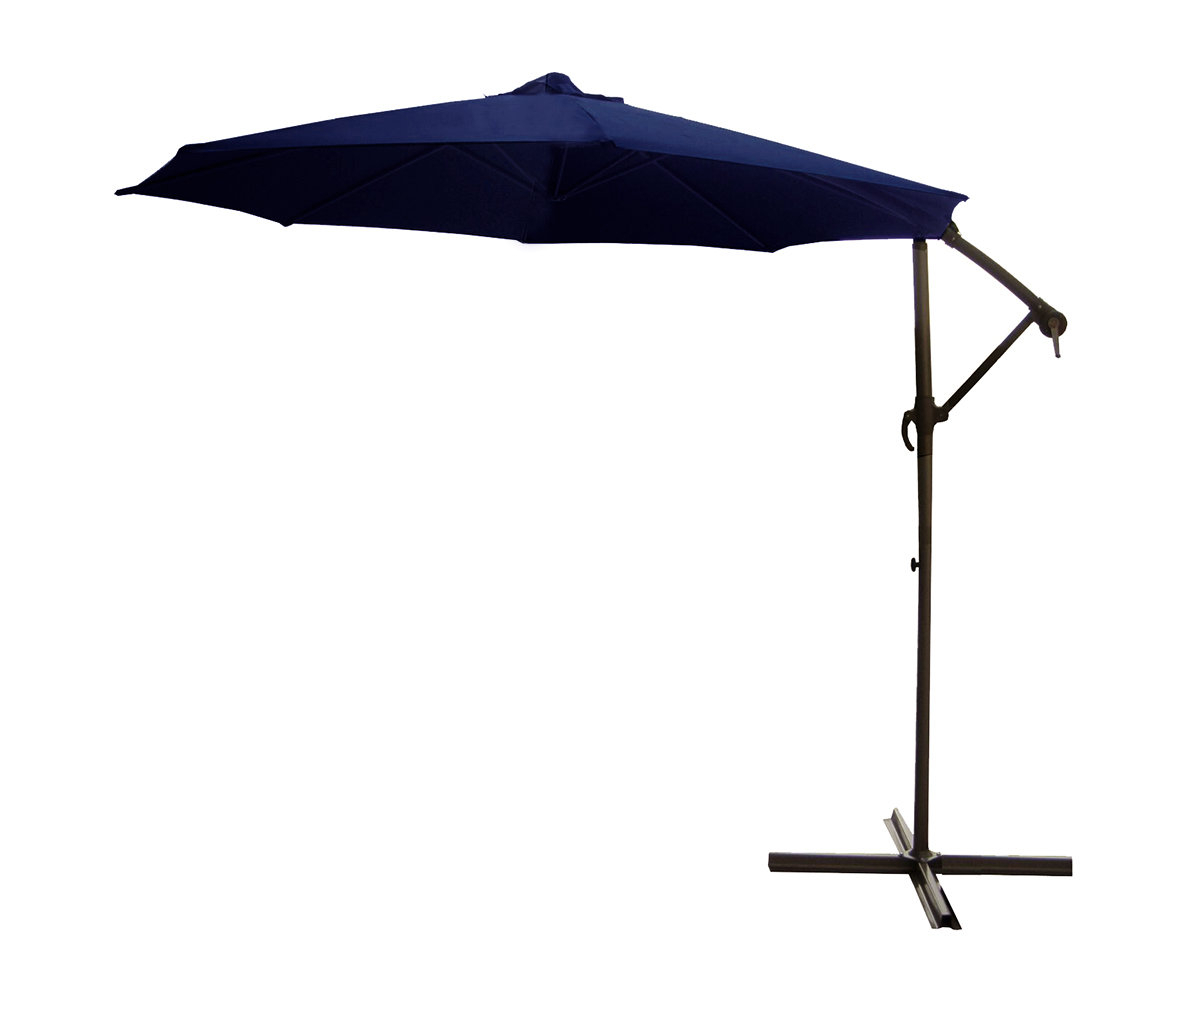 9.5' Cantilever Umbrella Throughout Well Known Trotman Cantilever Umbrellas (Gallery 18 of 20)